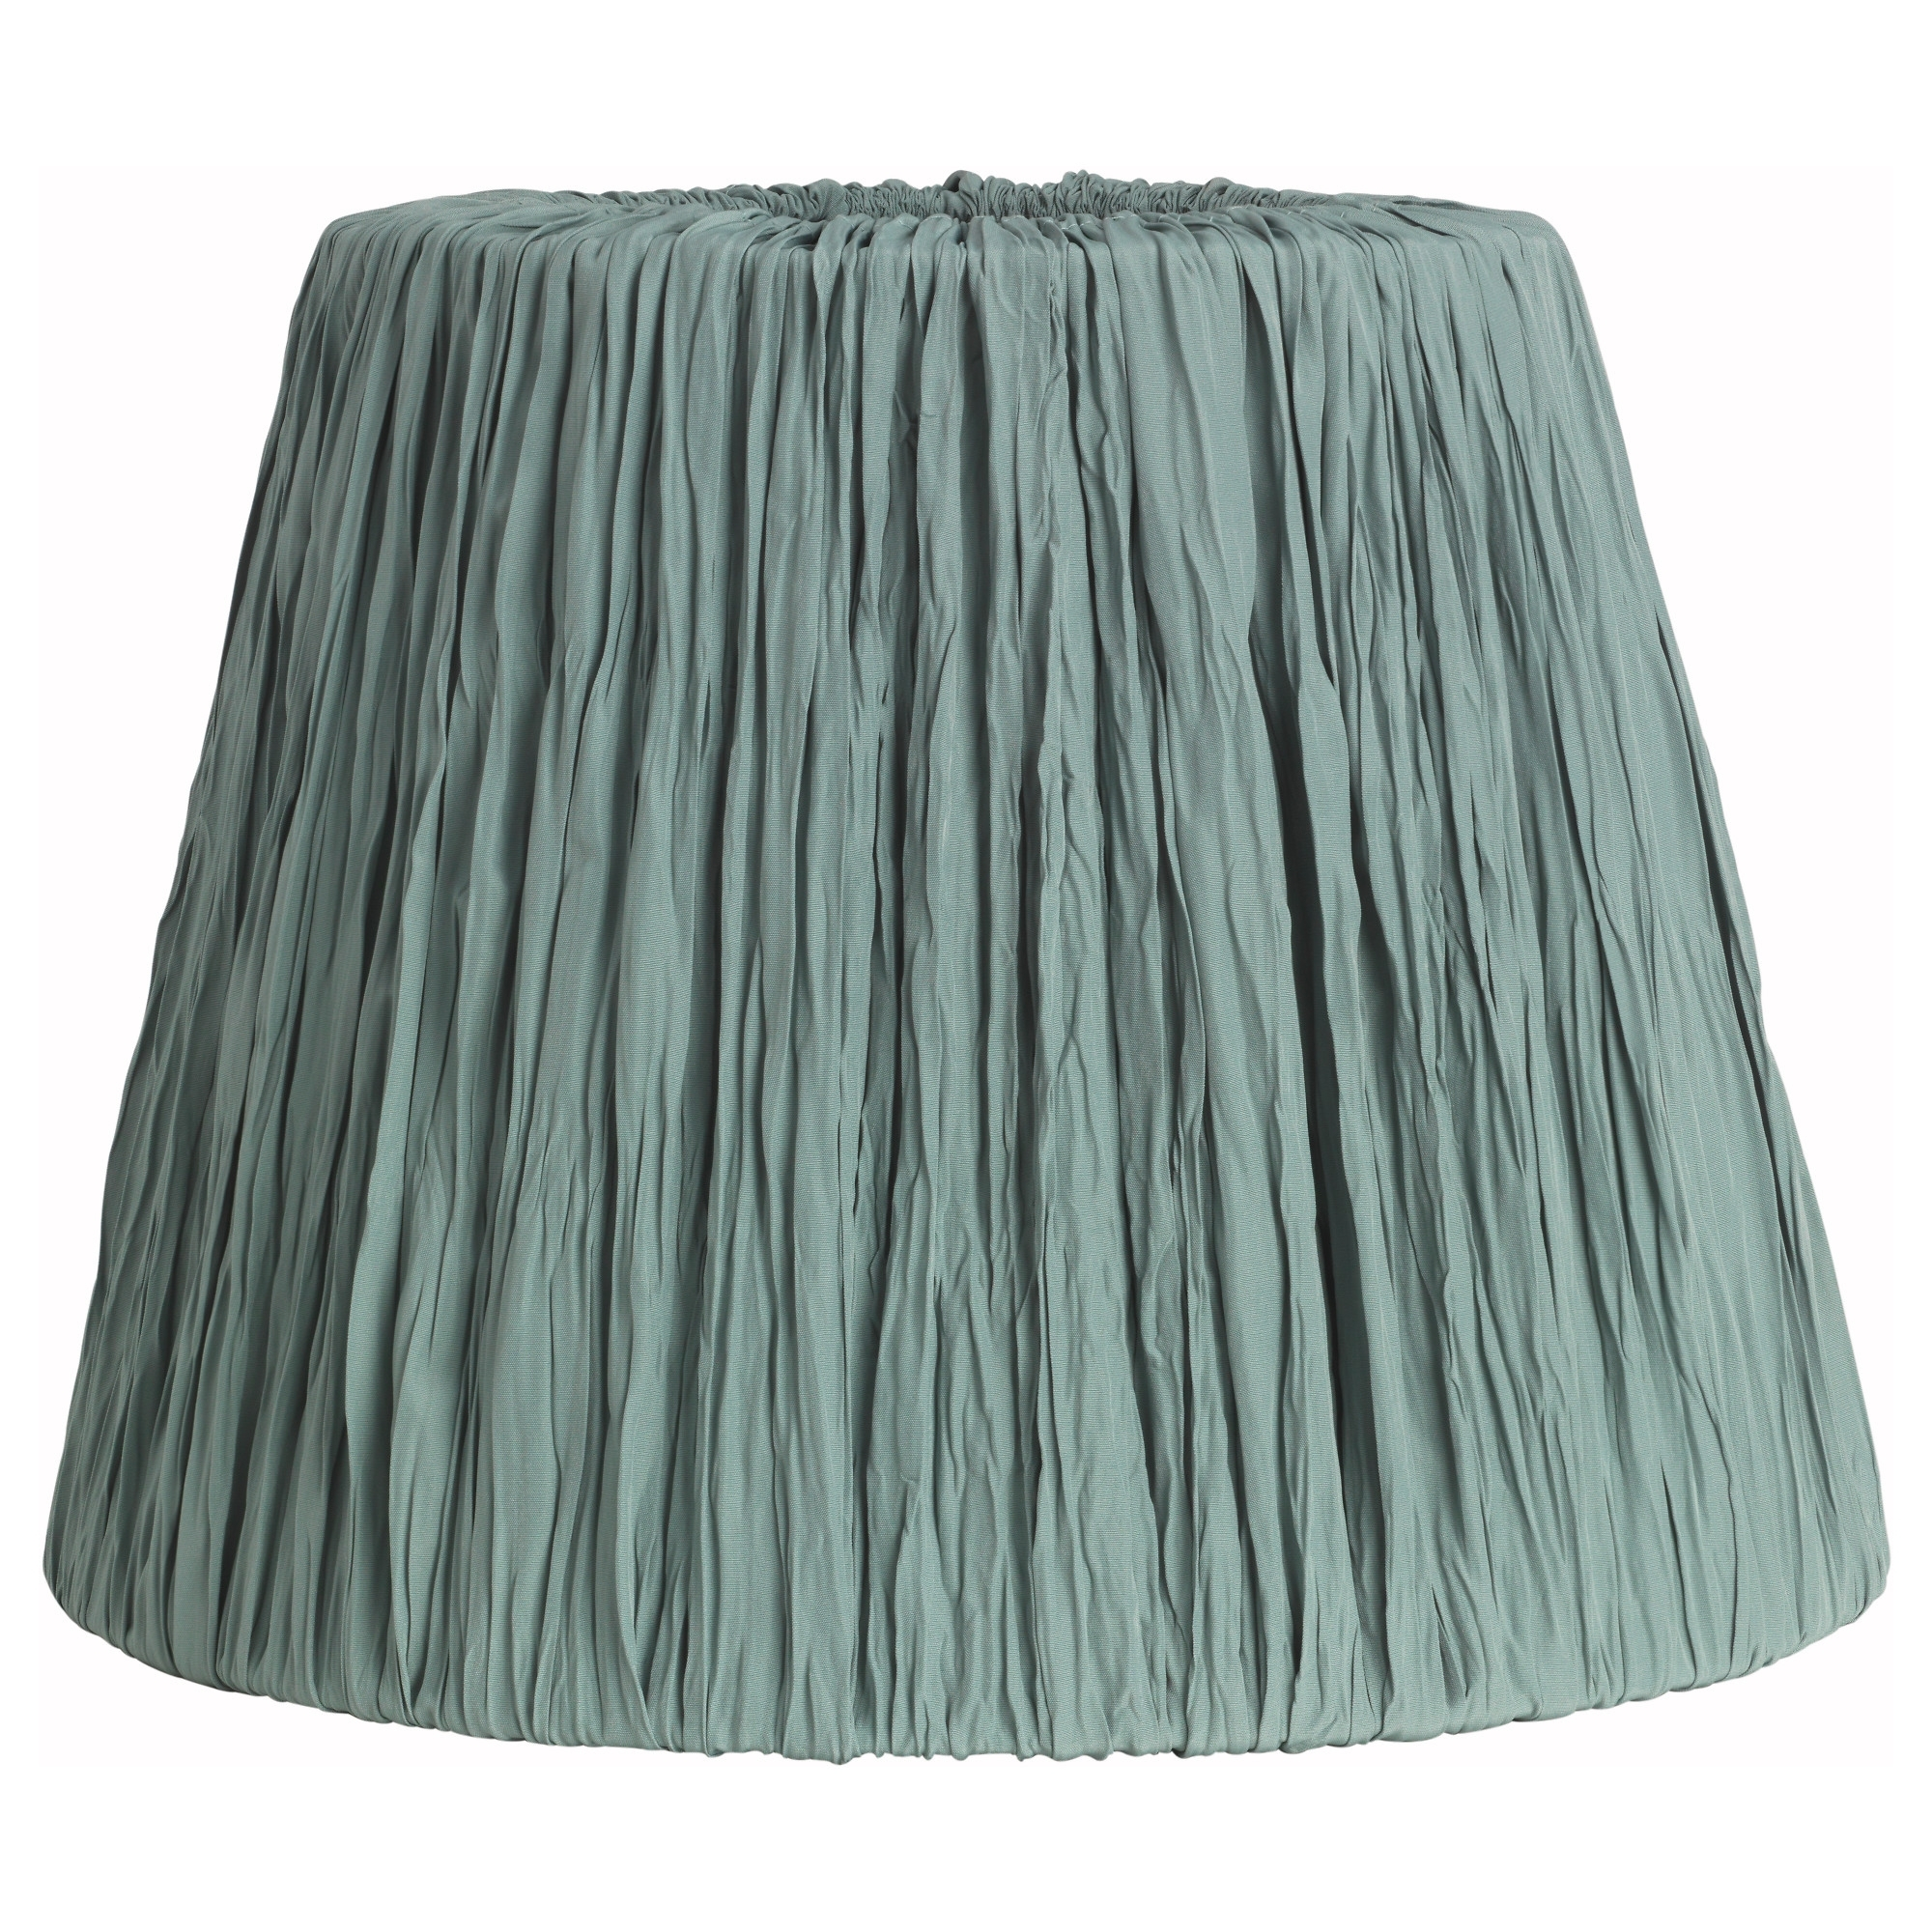 Turquoise Chandelier Lamp Shades With Regard To Most Recently Released Lamp Shades For Chandelier With Decorative Chandeliers Best Home (View 18 of 20)